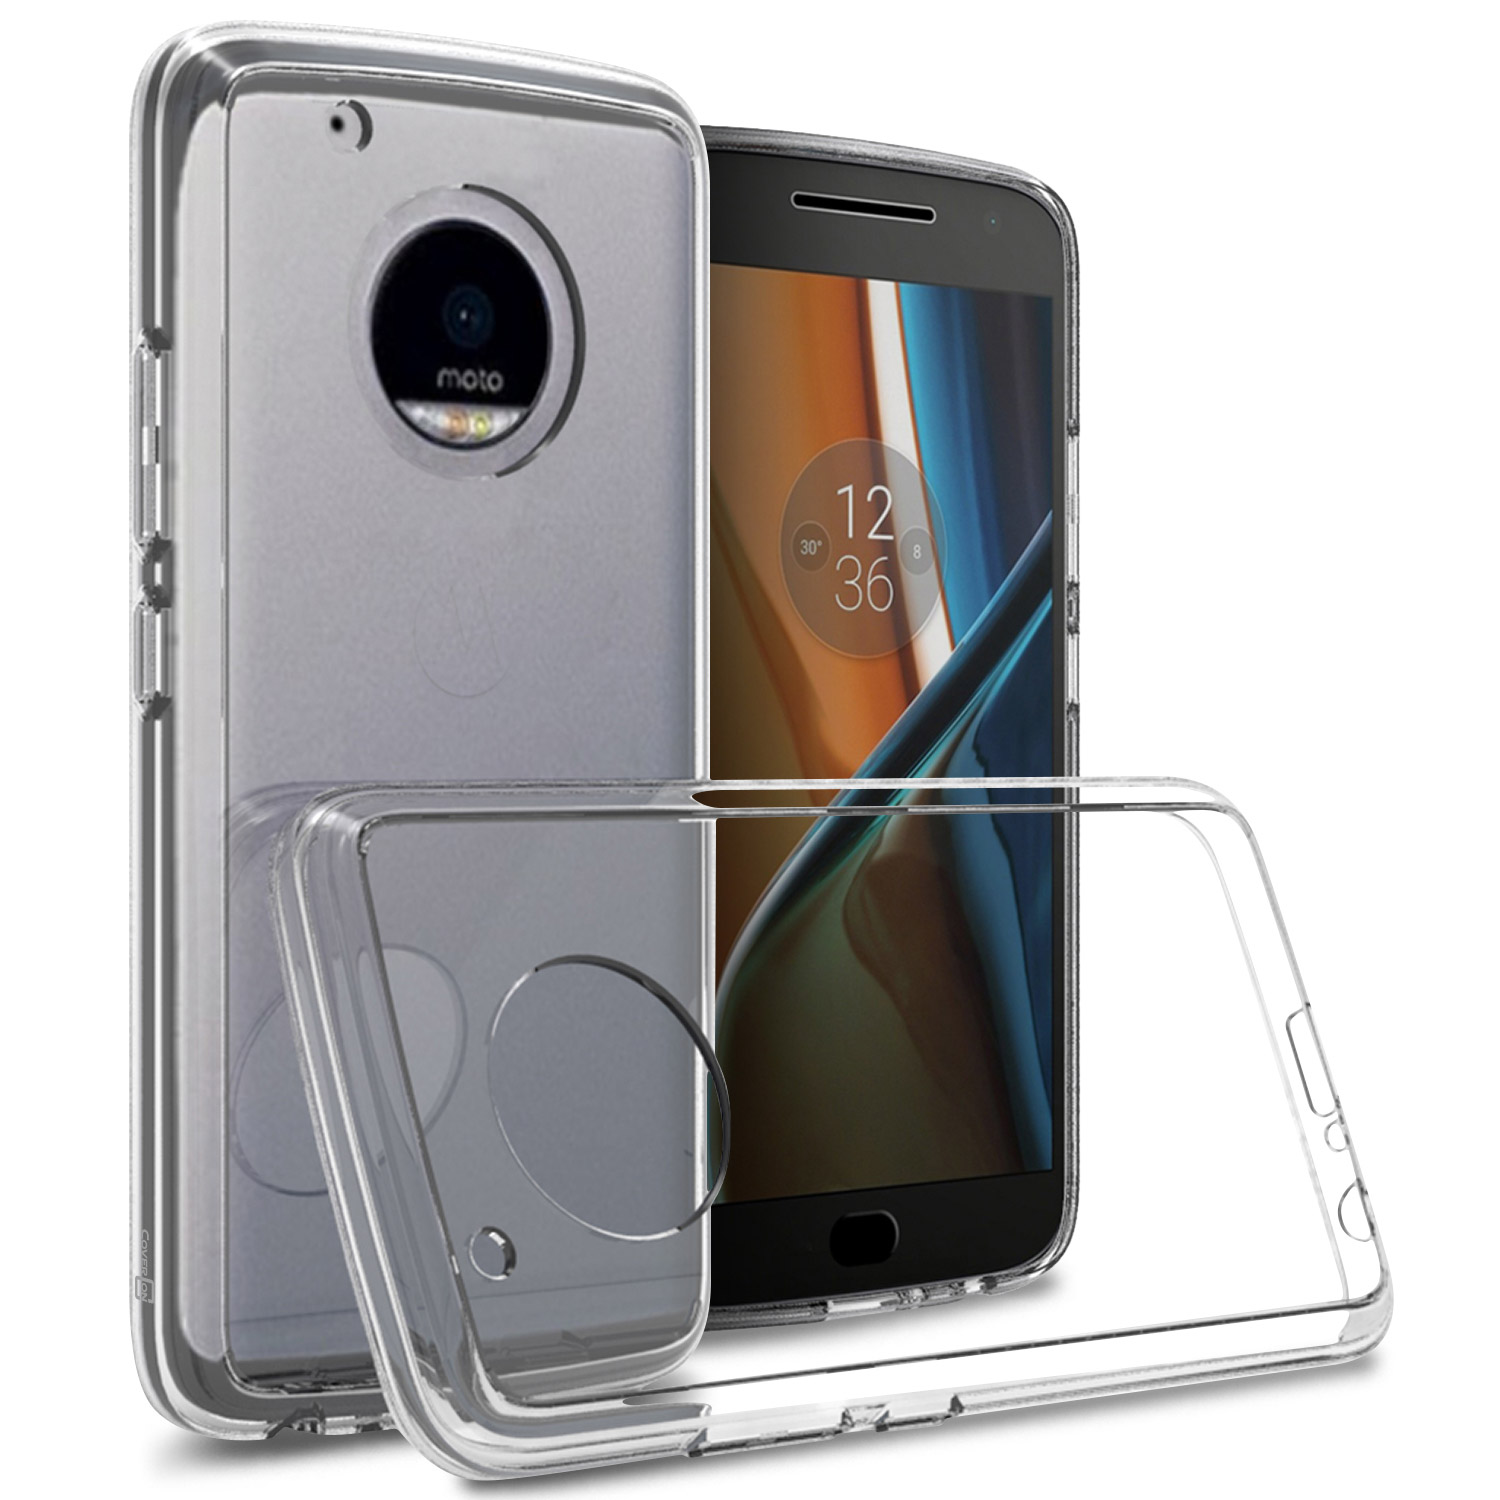 new product ea20e aa54a Details about Clear Hybrid TPU Bumper Hard Cover Case For Motorola Moto G5  Plus / Moto X 2017